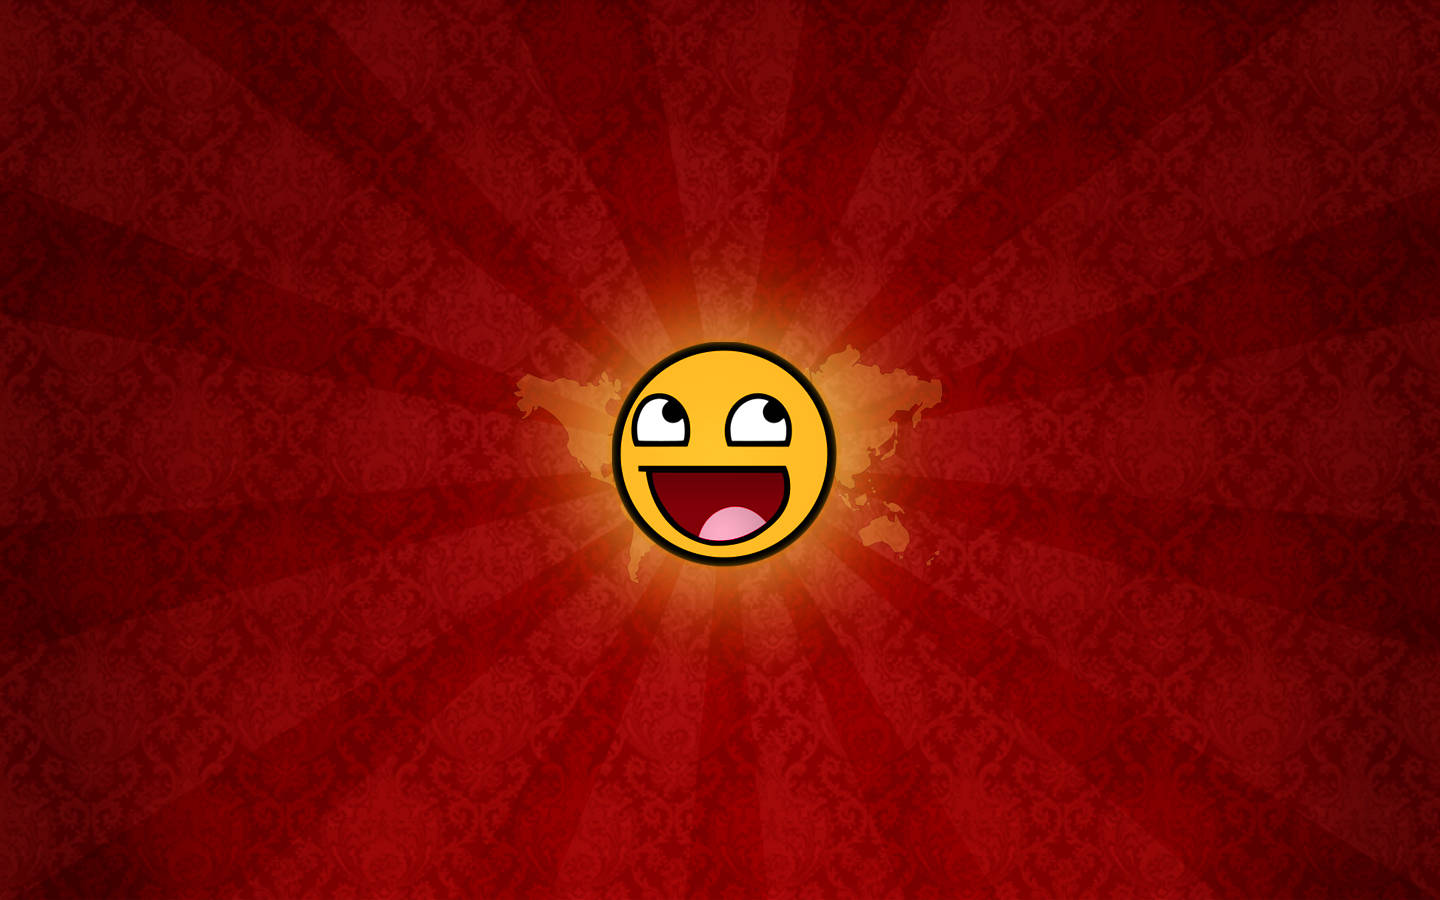 smiley awesome face 1920x1200 wallpaper digital awesome face hd art hd 1440x900